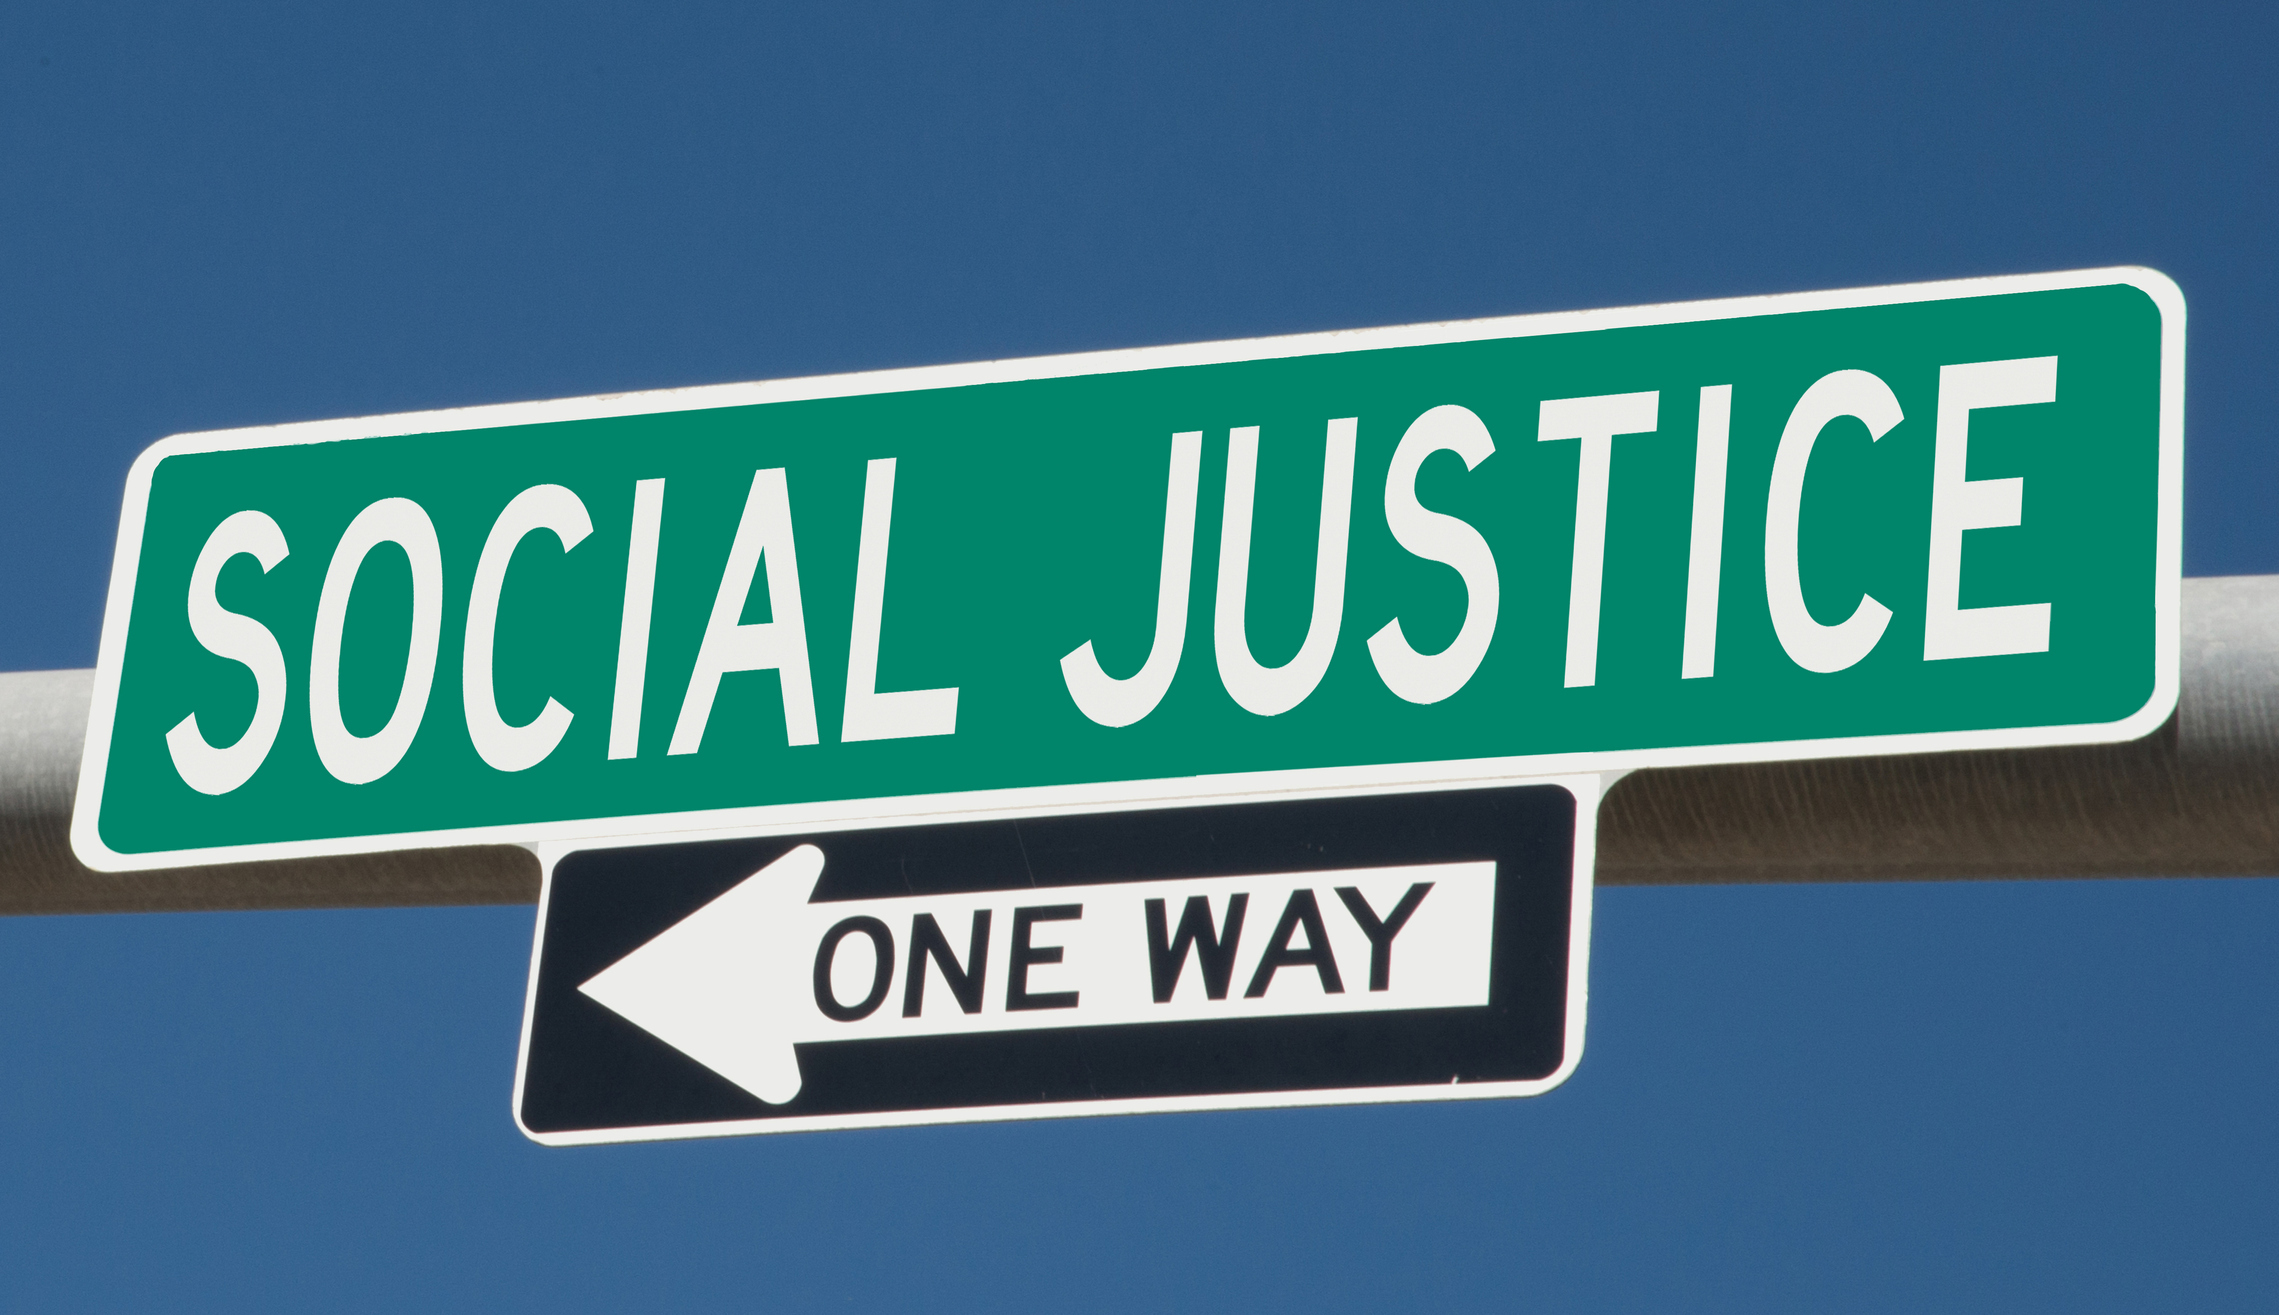 Social Justice Street Sign